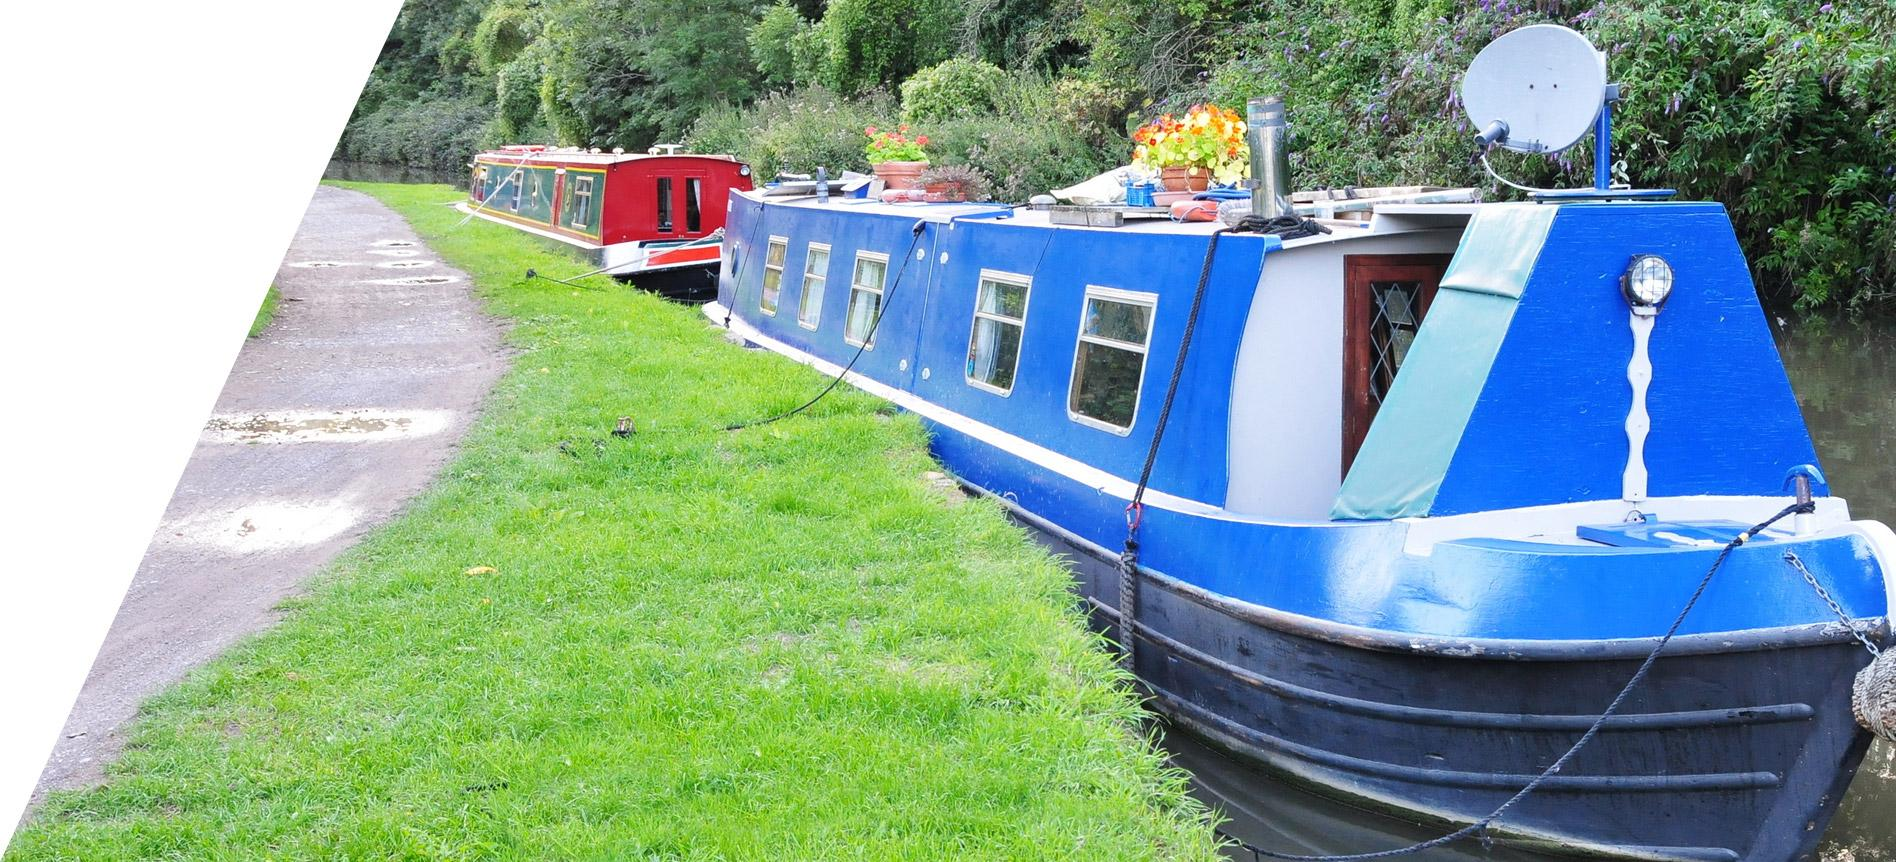 houseboats moored at canal edge